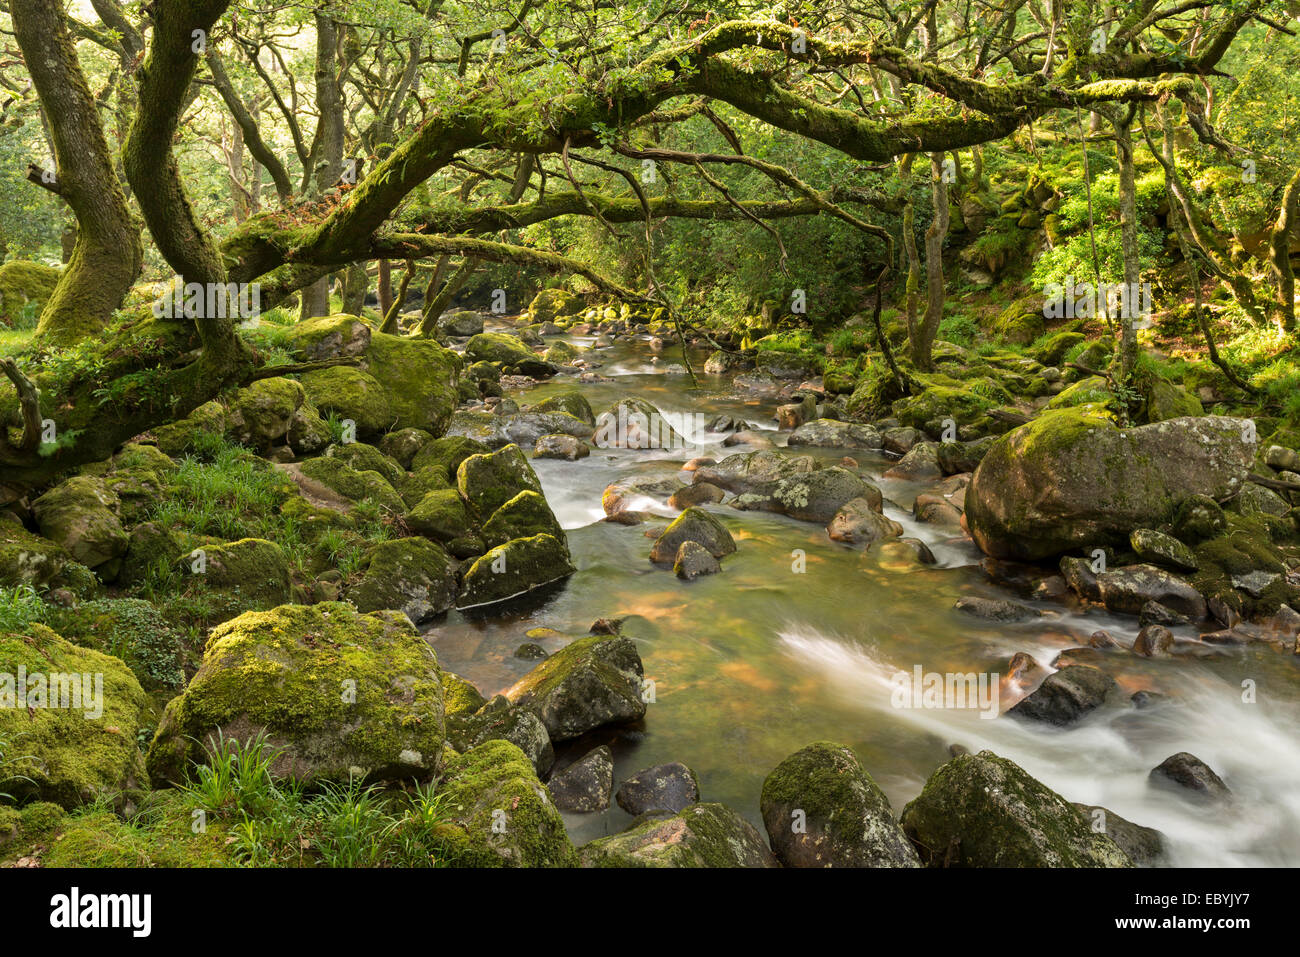 Rocky River Plym flowing through Dewerstone Wood, Dartmoor, Devon, England. Summer (June) 2014. - Stock Image